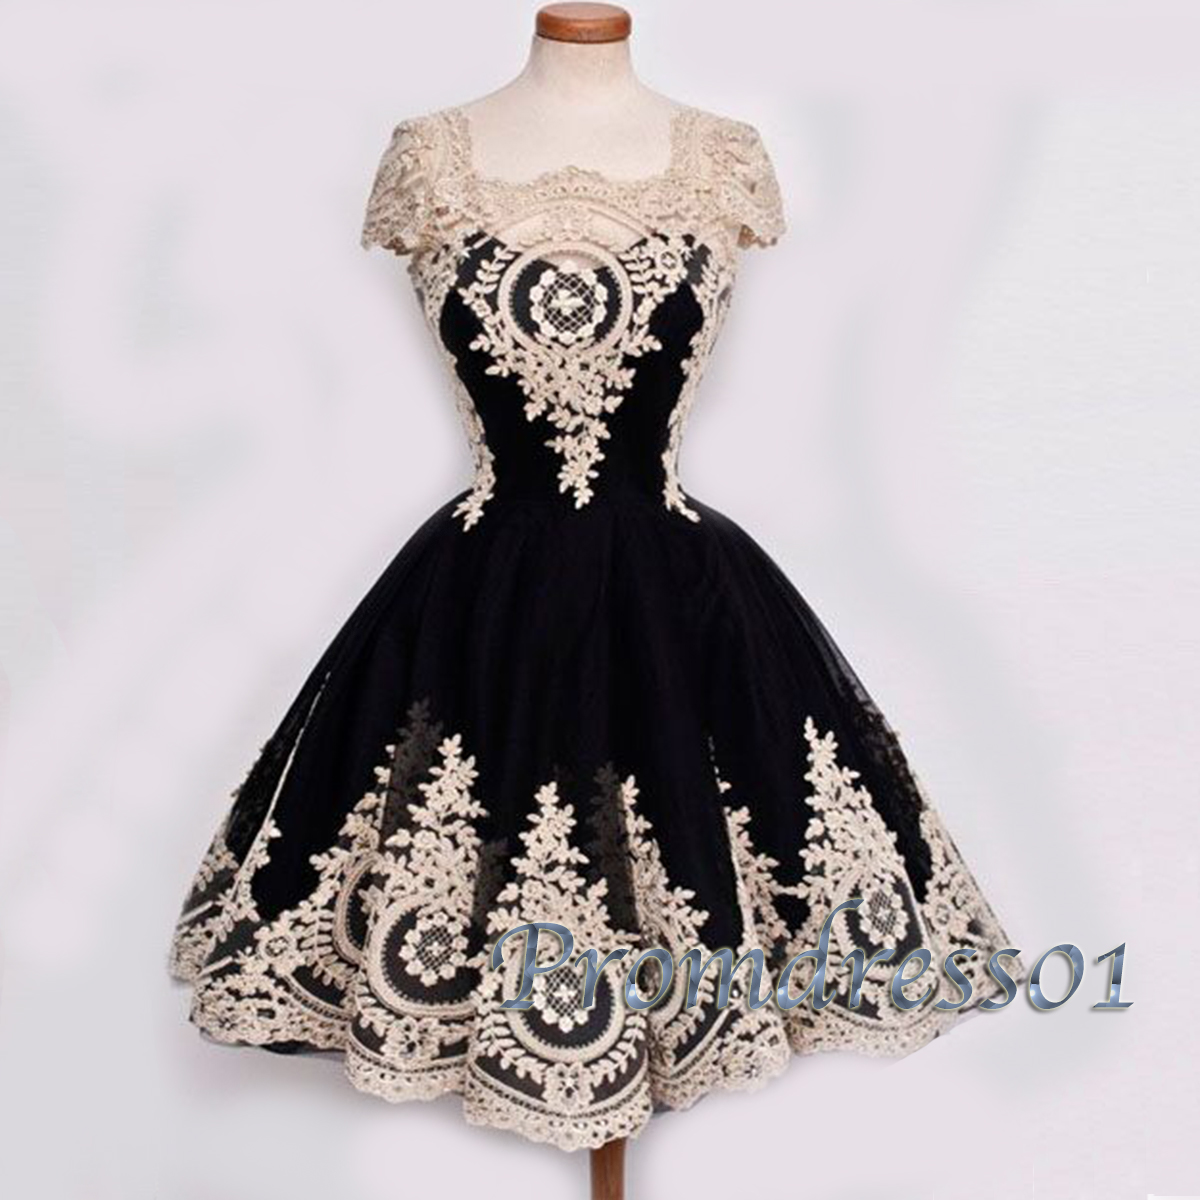 Vintage custom size cap sleeves short ball gown